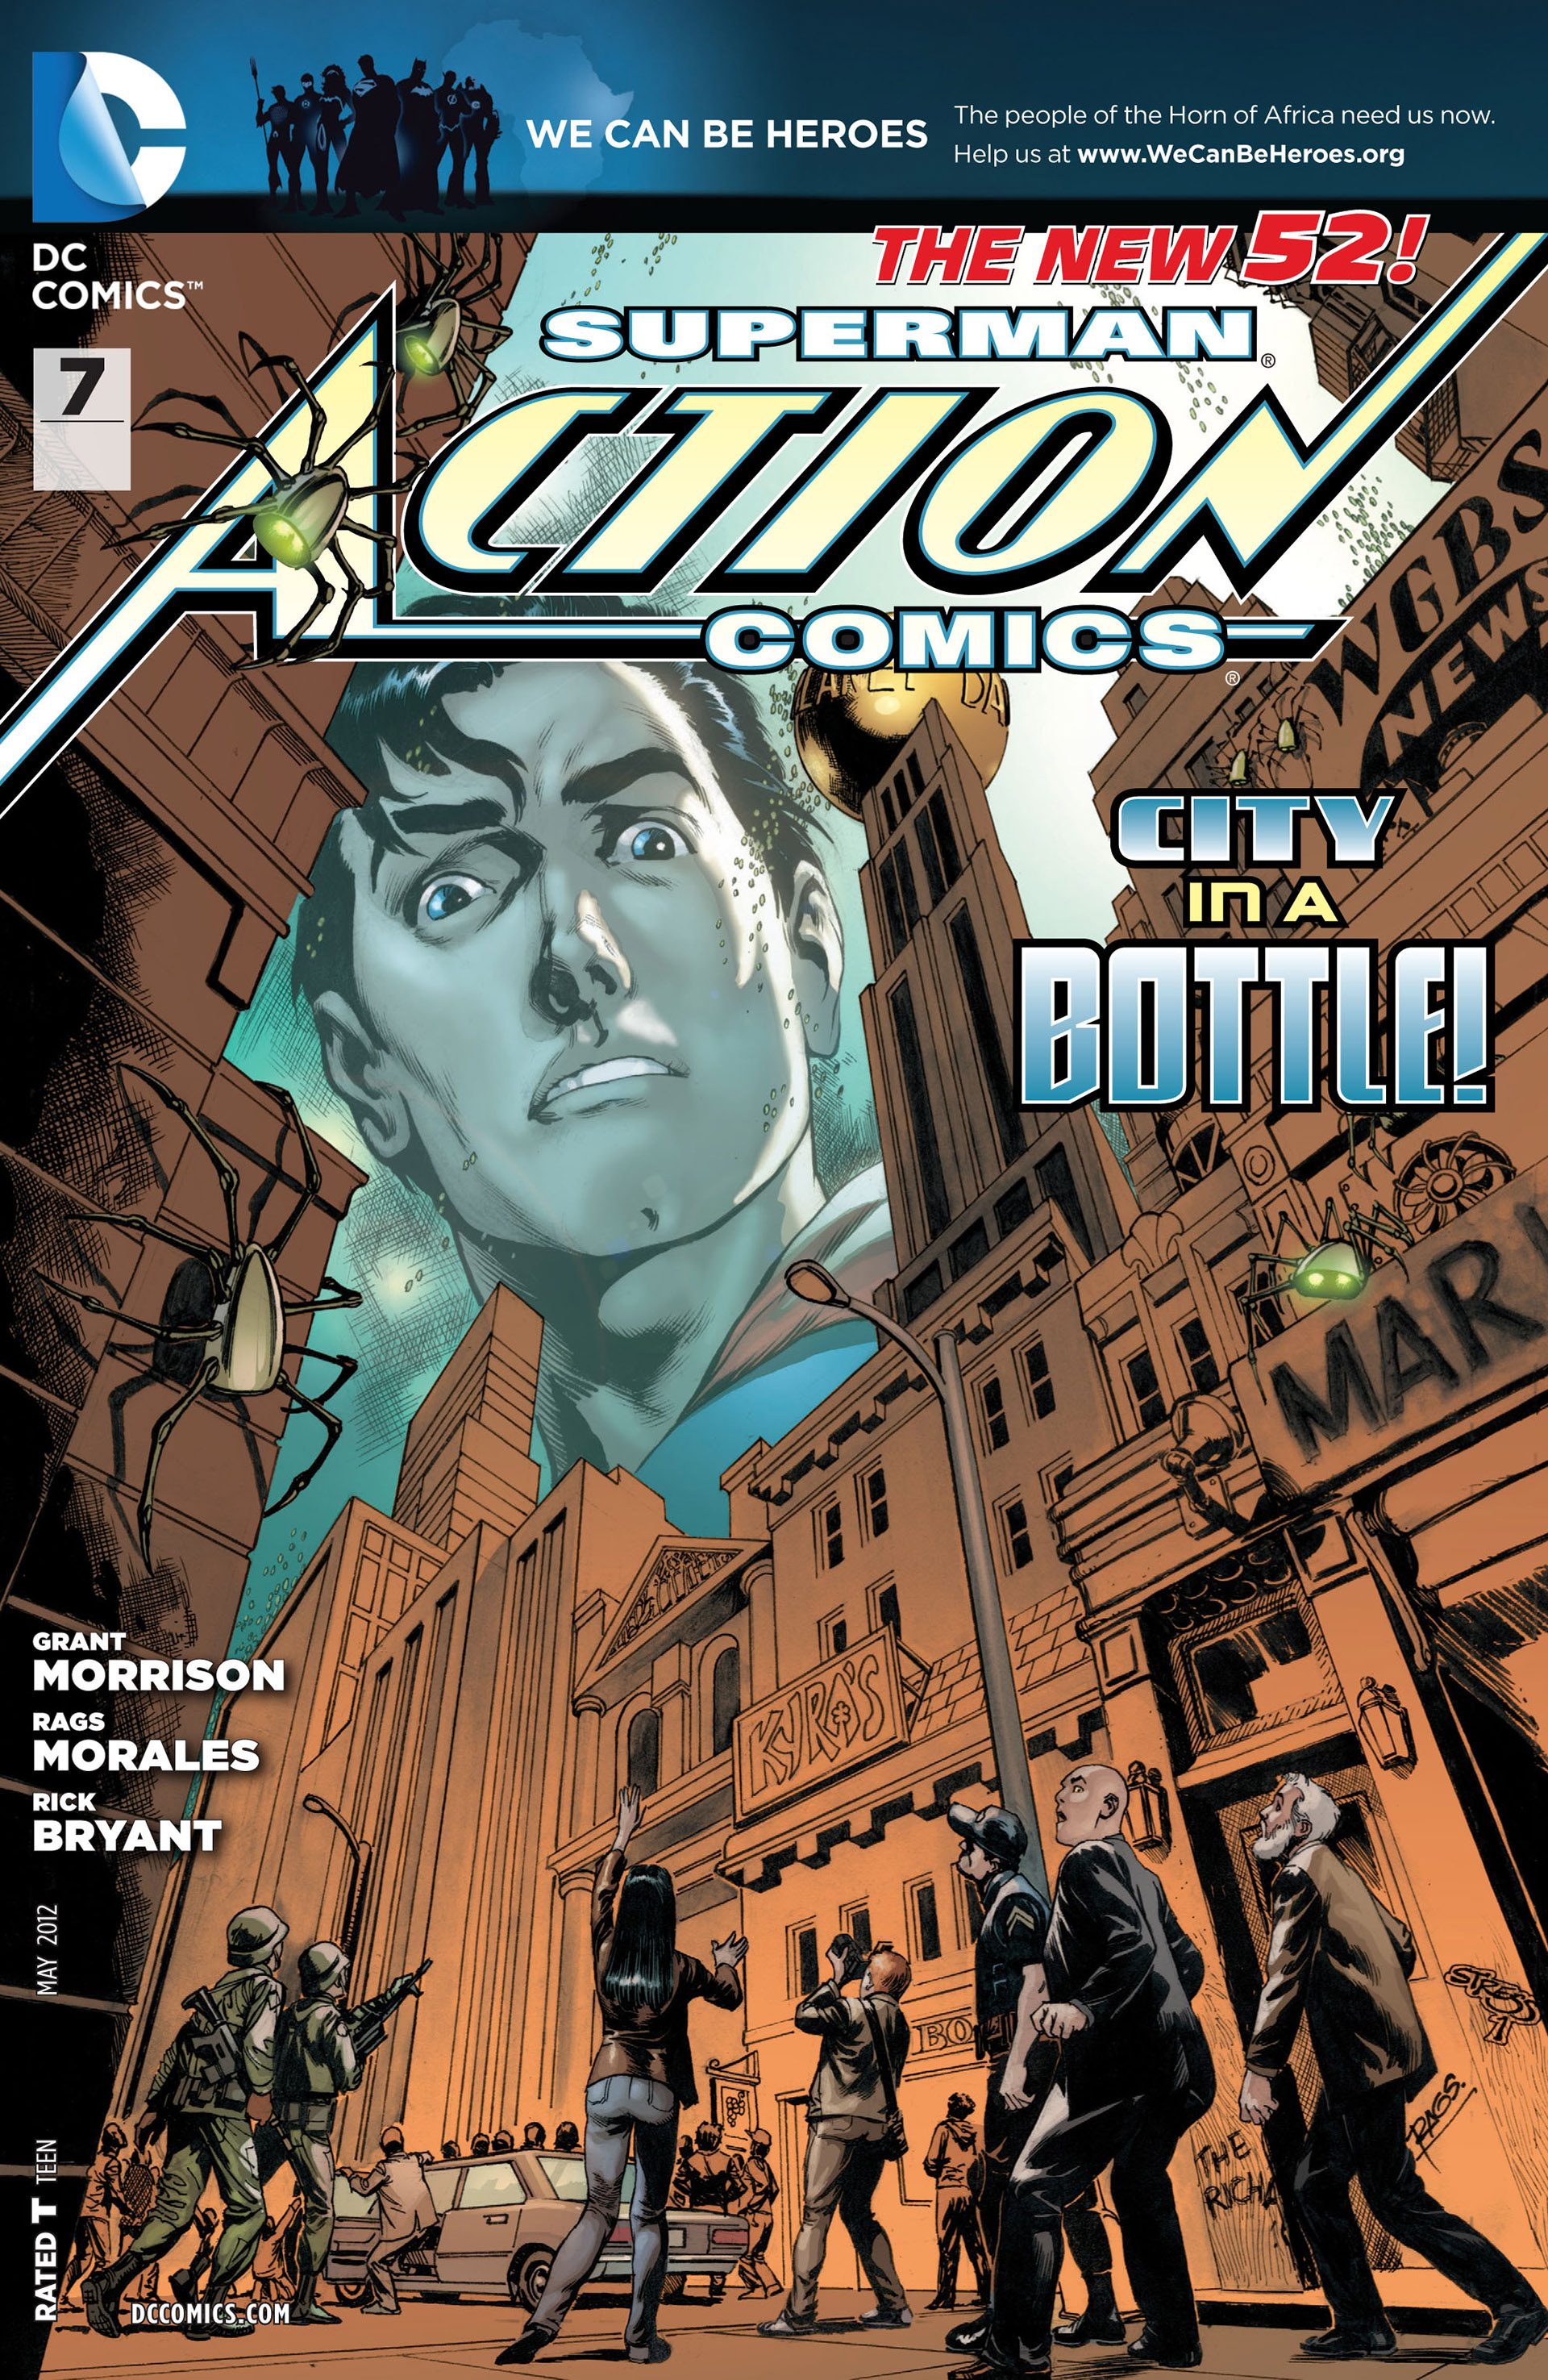 Action Comics (2011) 7 Page 1